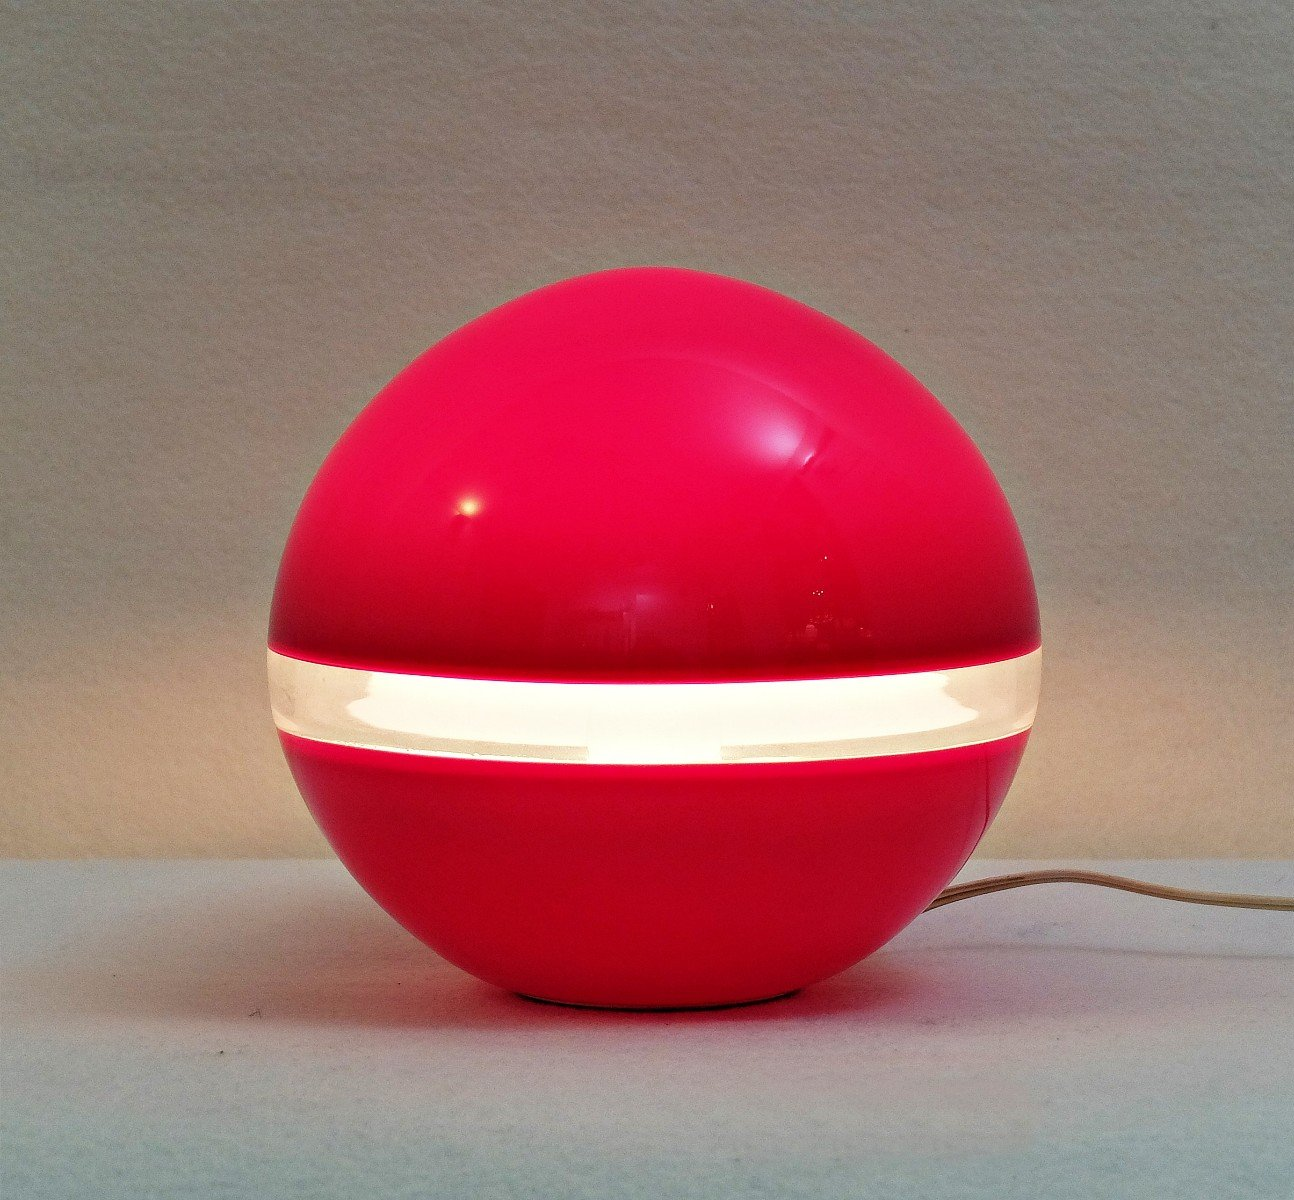 Italian Red Table Lamp by Carlo Nason for Mazzega, 1970s